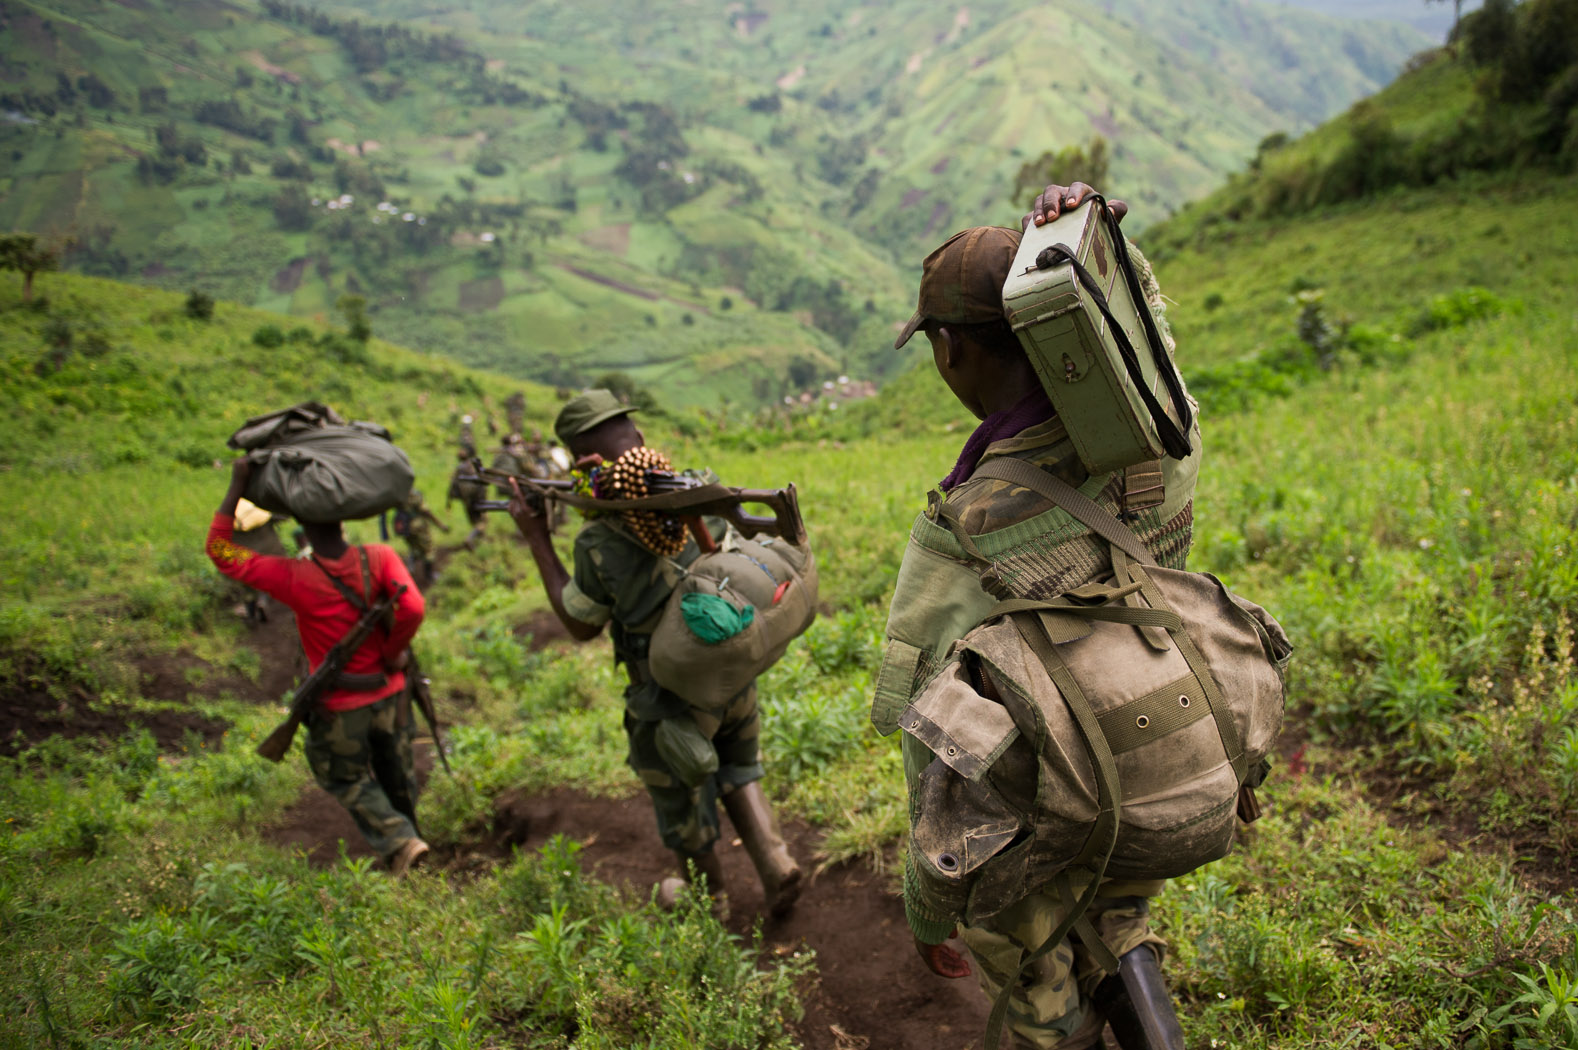 After rebelling from the Congolese national army, taking weapons and ammunition with them, M23 grew into a major rebel movement in eastern Congo's North Kivu province.